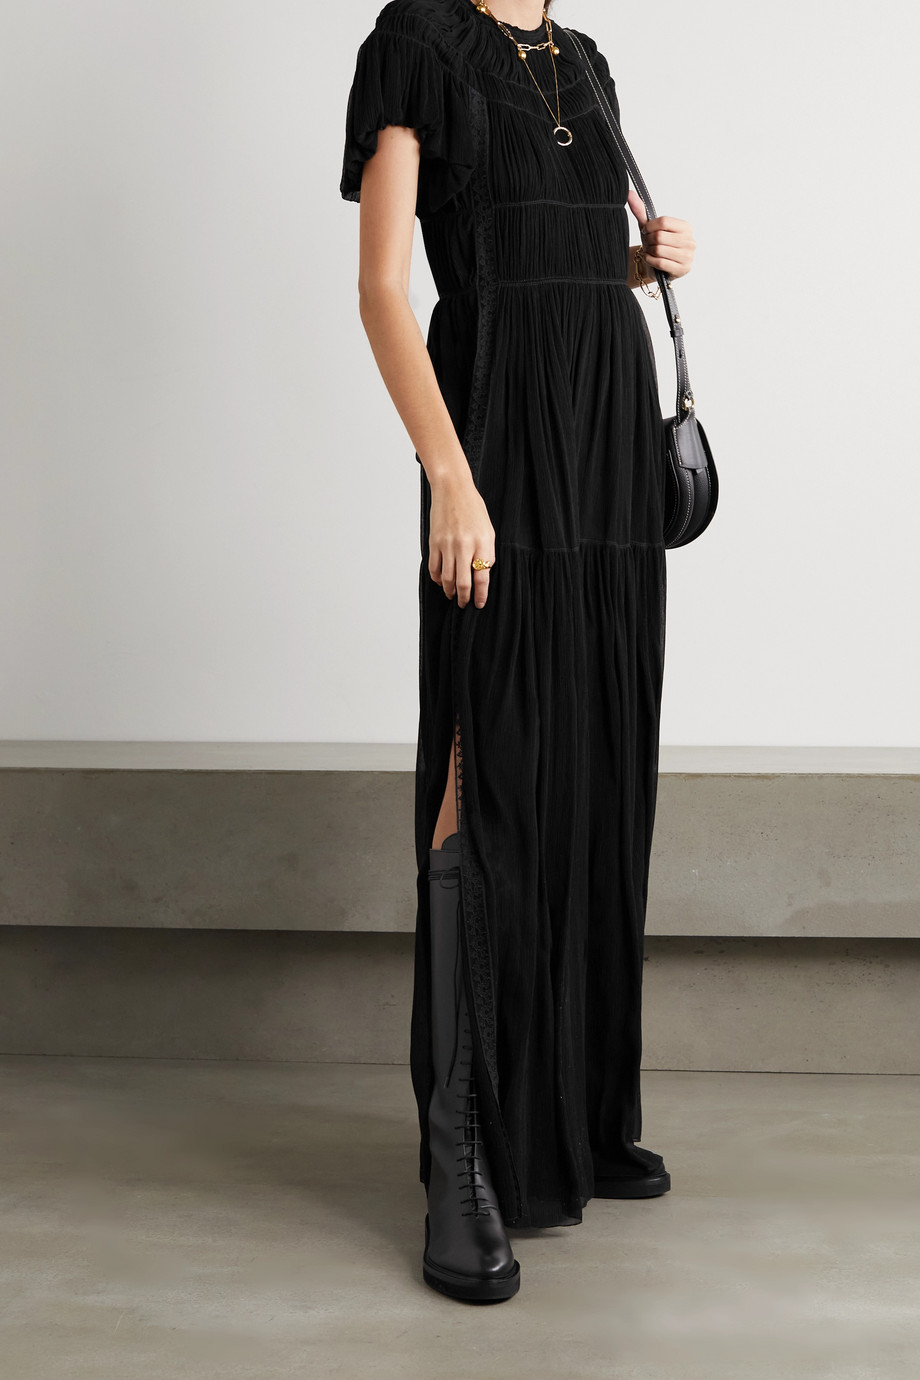 Chloé Lace-trimmed silk-crepon maxi dress